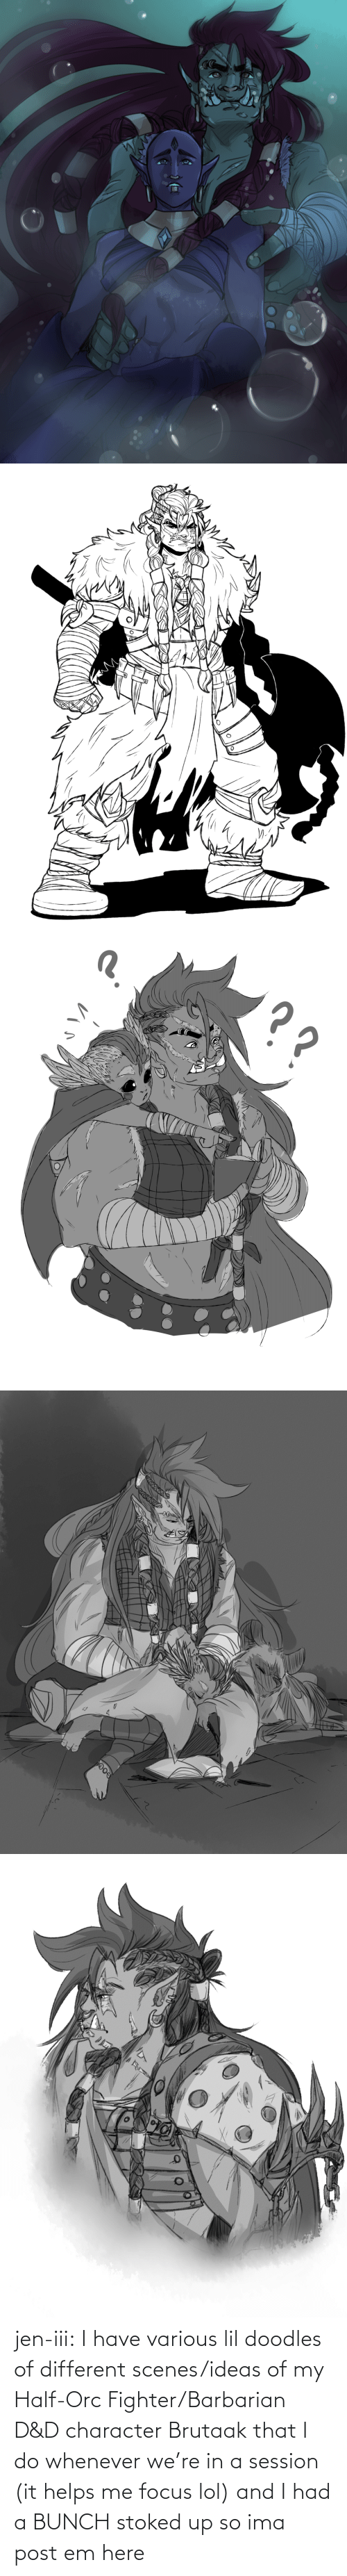 Lol, Tumblr, and Blog: jen-iii:  I have various lil doodles of different scenes/ideas of my Half-Orc Fighter/Barbarian D&D character Brutaak that I do whenever we're in a session (it helps me focus lol) and I had a BUNCH stoked up so ima post em here